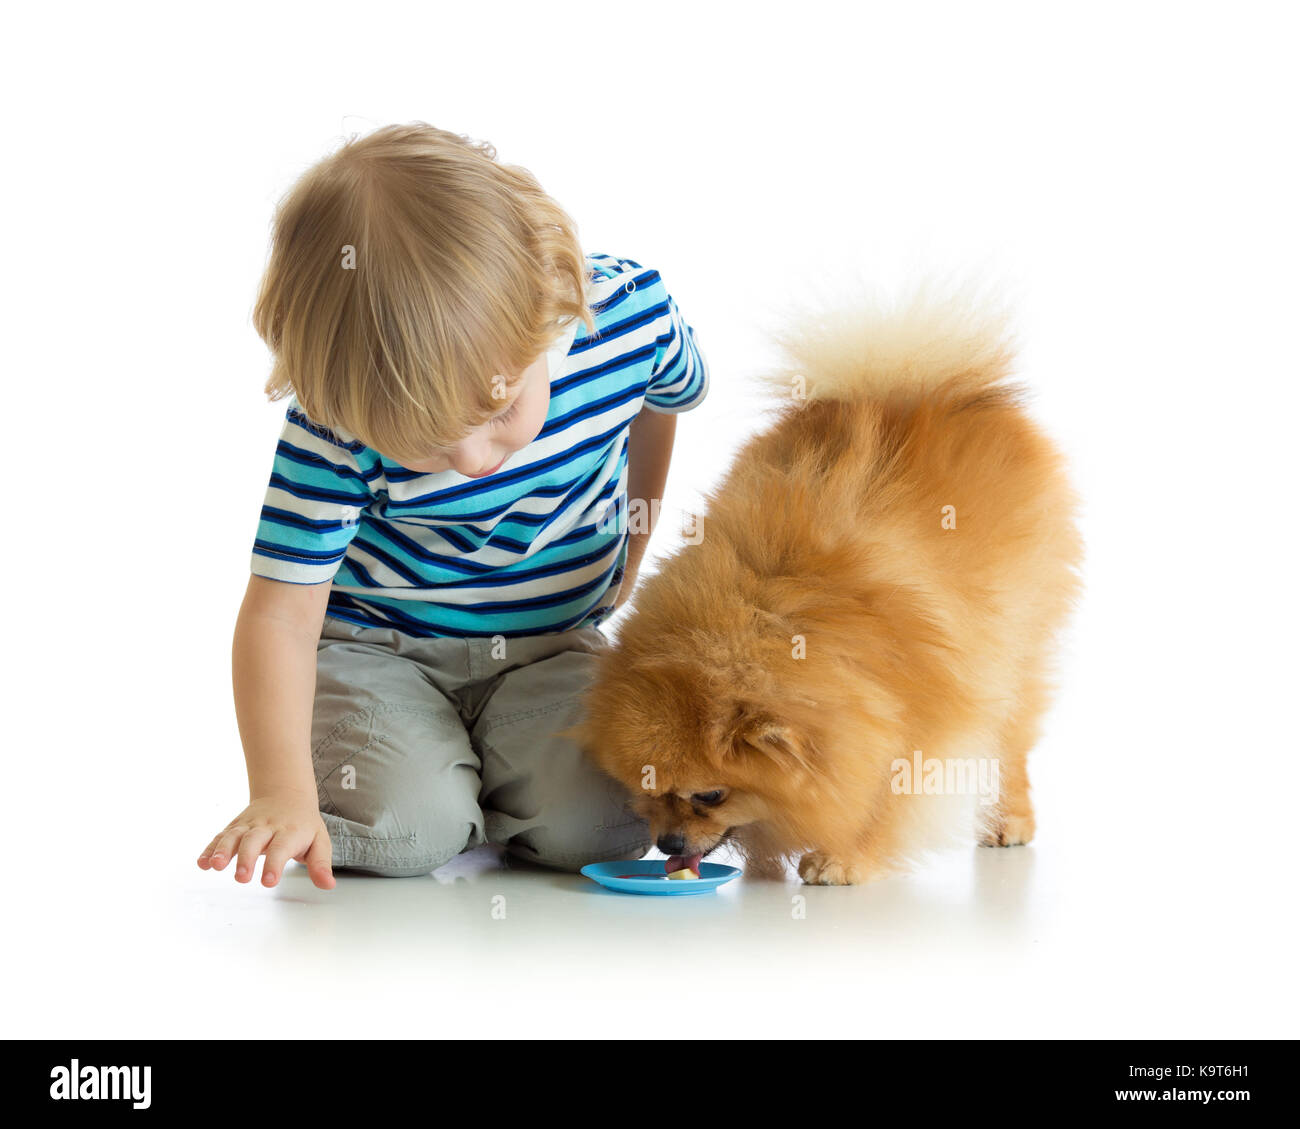 Little chiild boy feeding dog isolated on white - Stock Image